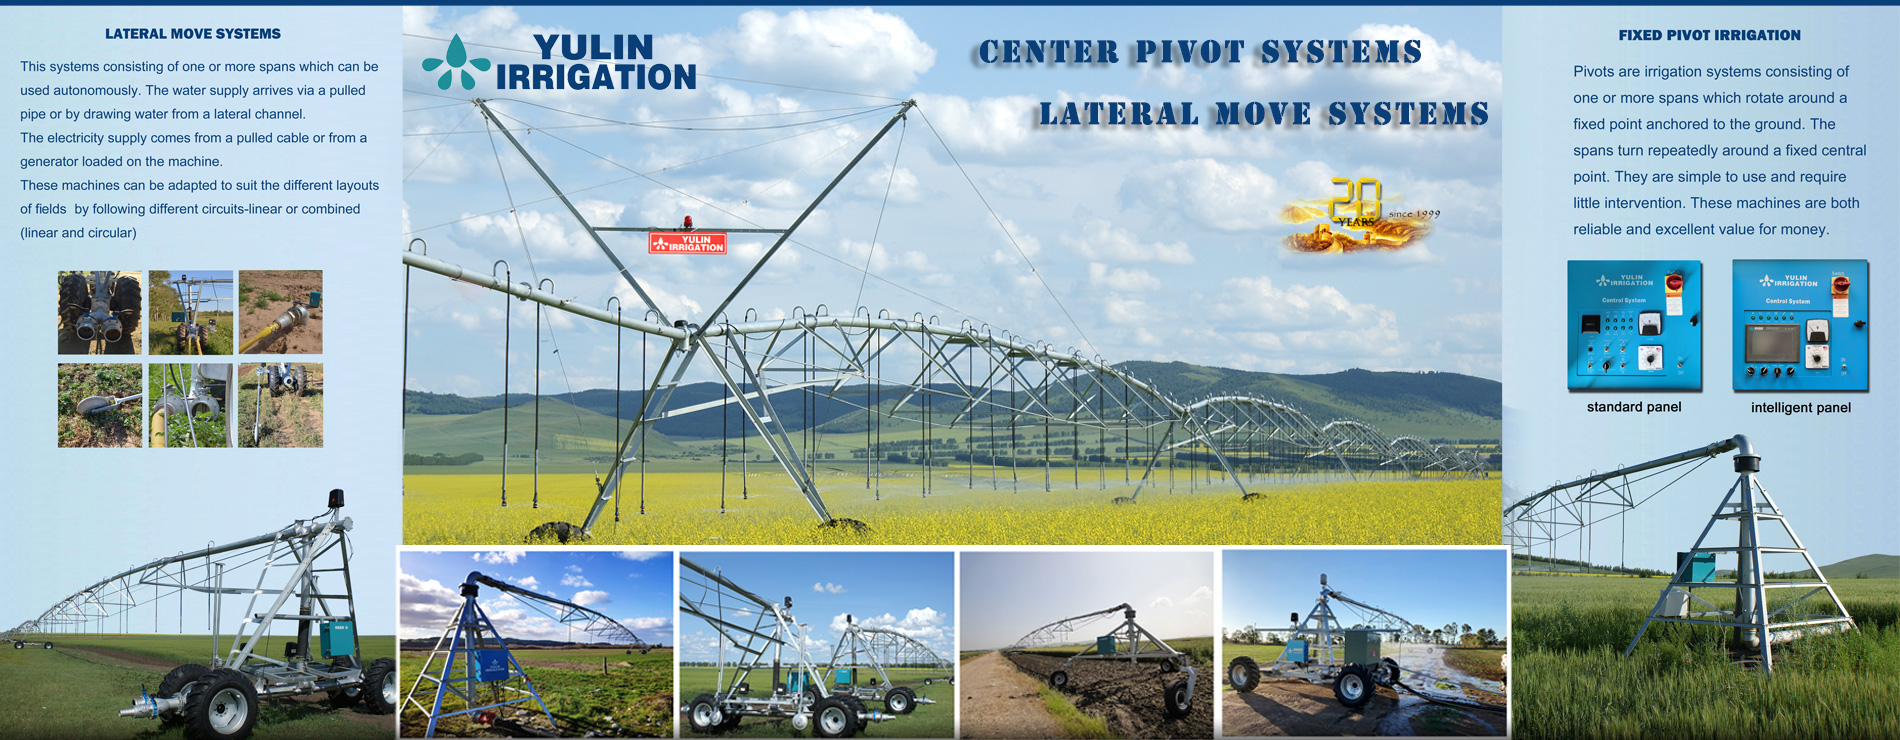 DYP Fixed Center Pivot Irrigation System